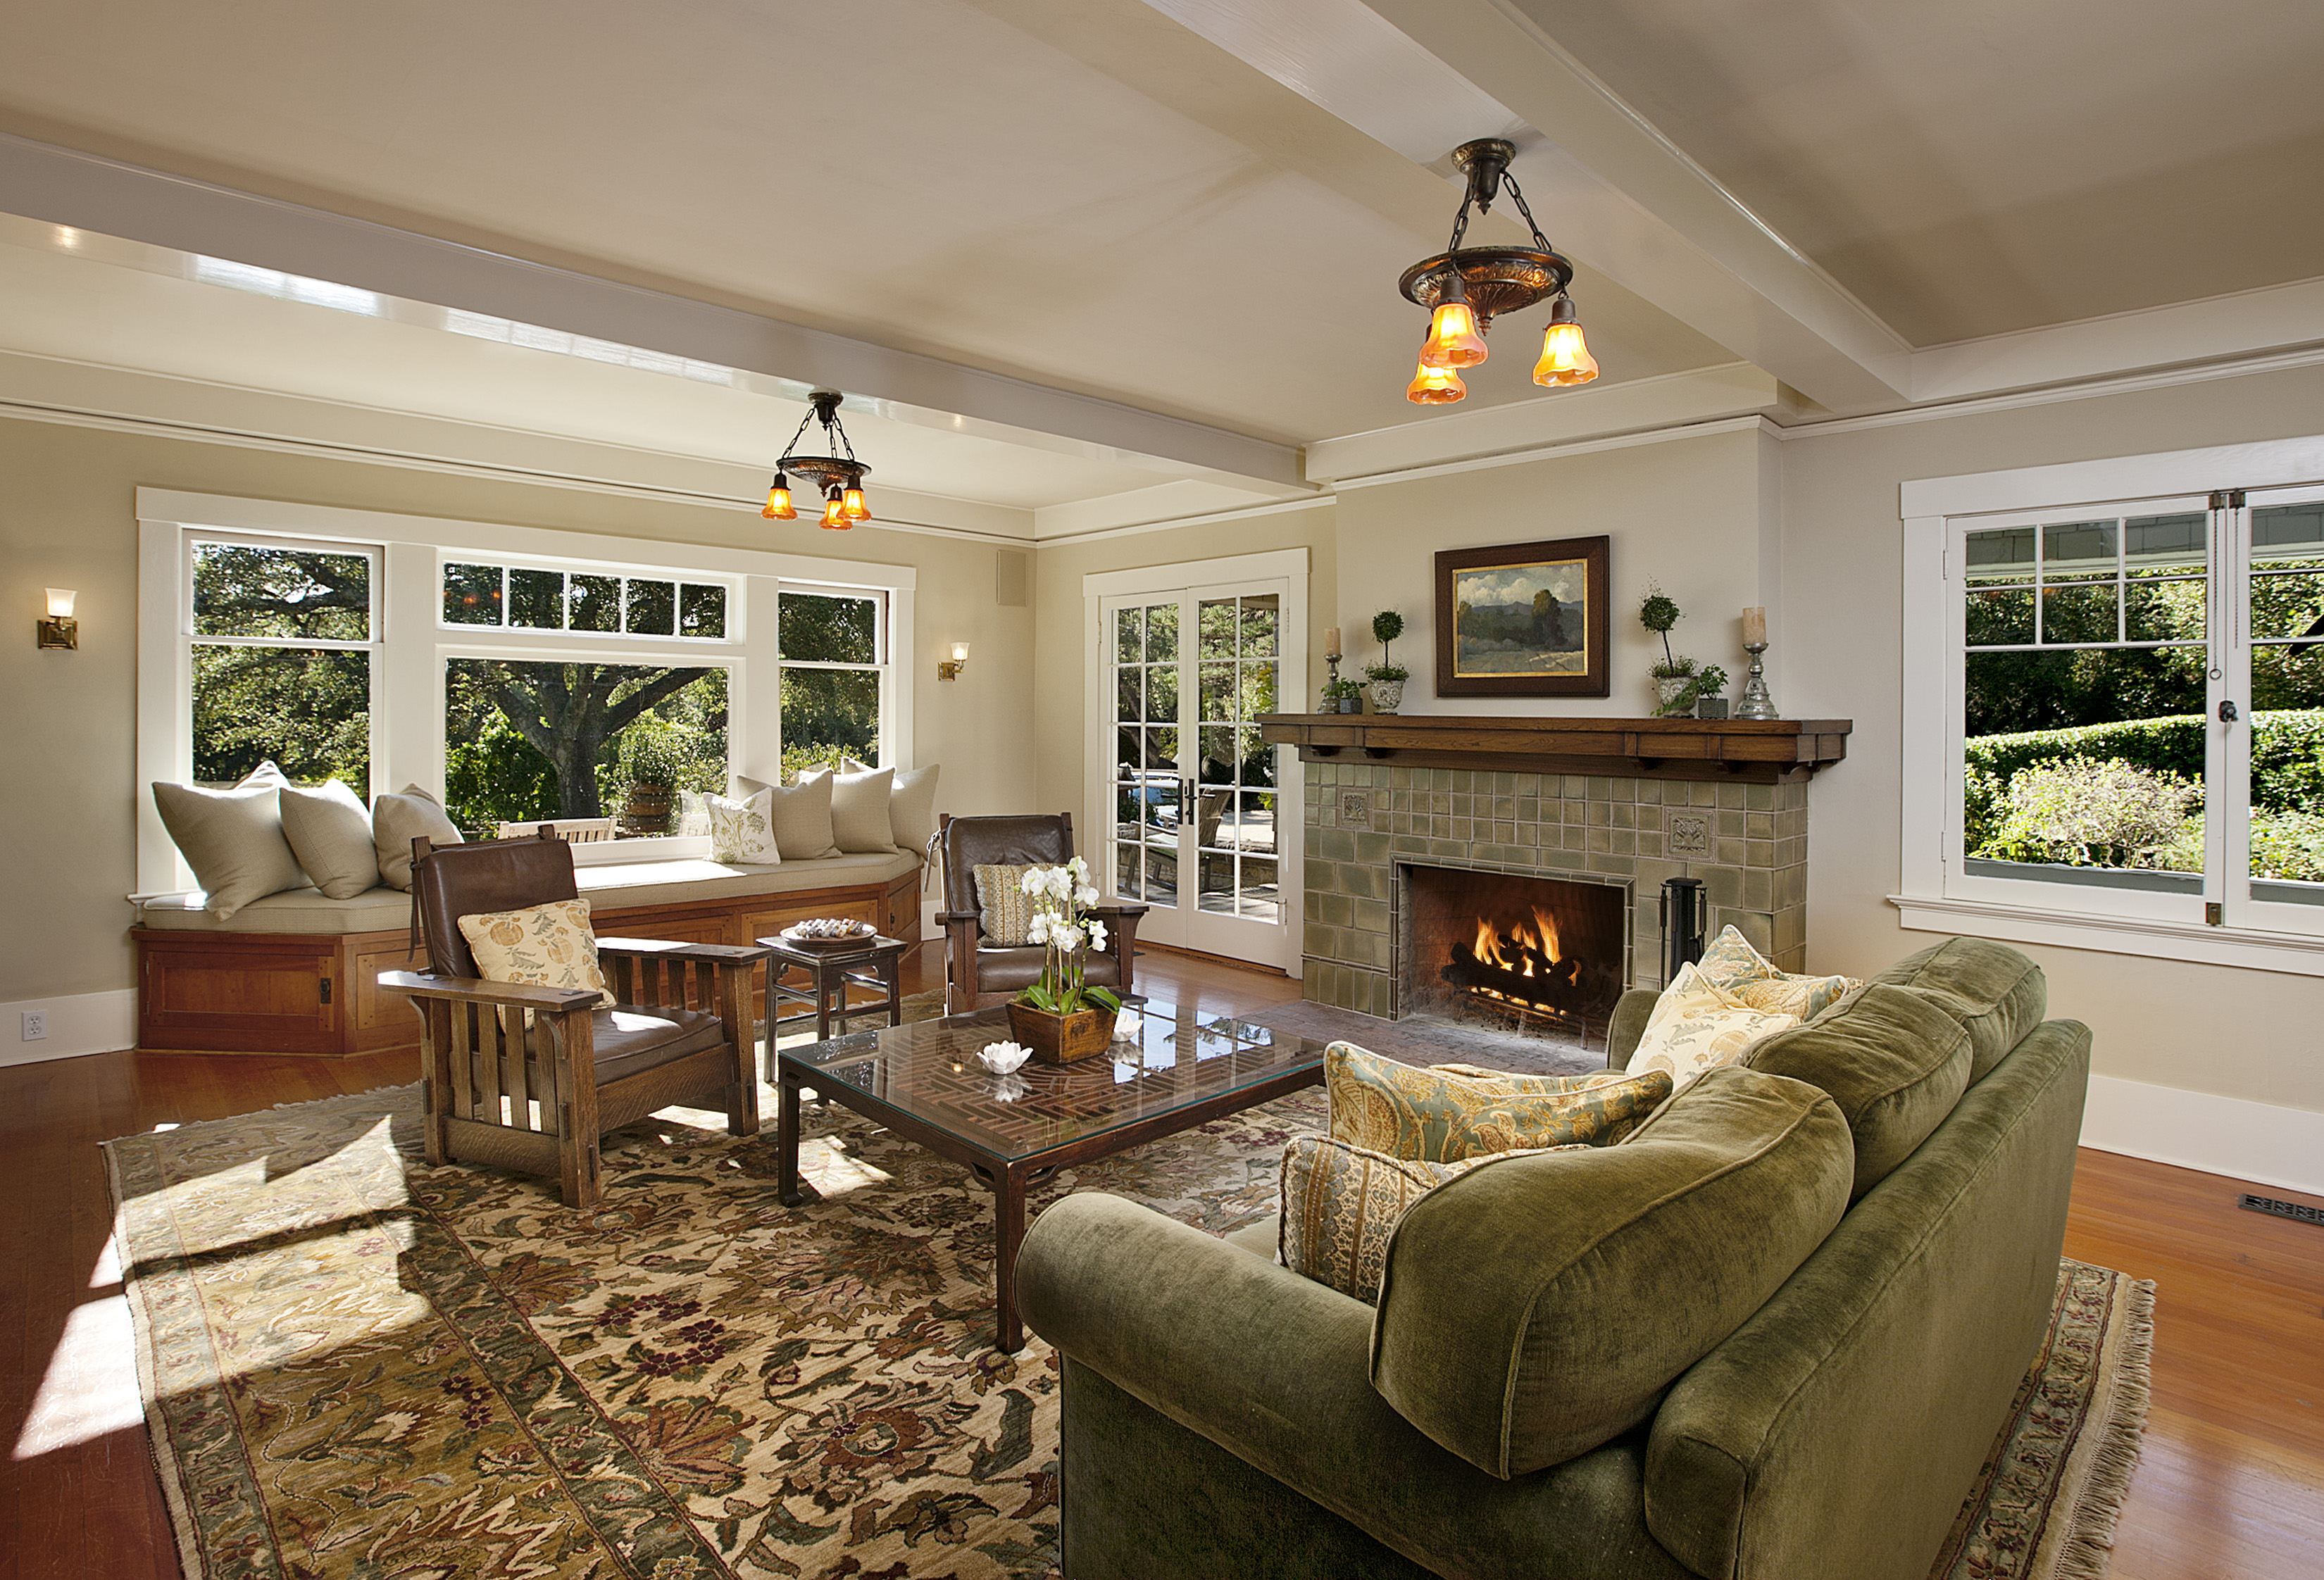 Superb Popular Home Styles For 2012 Montecito Real Estate